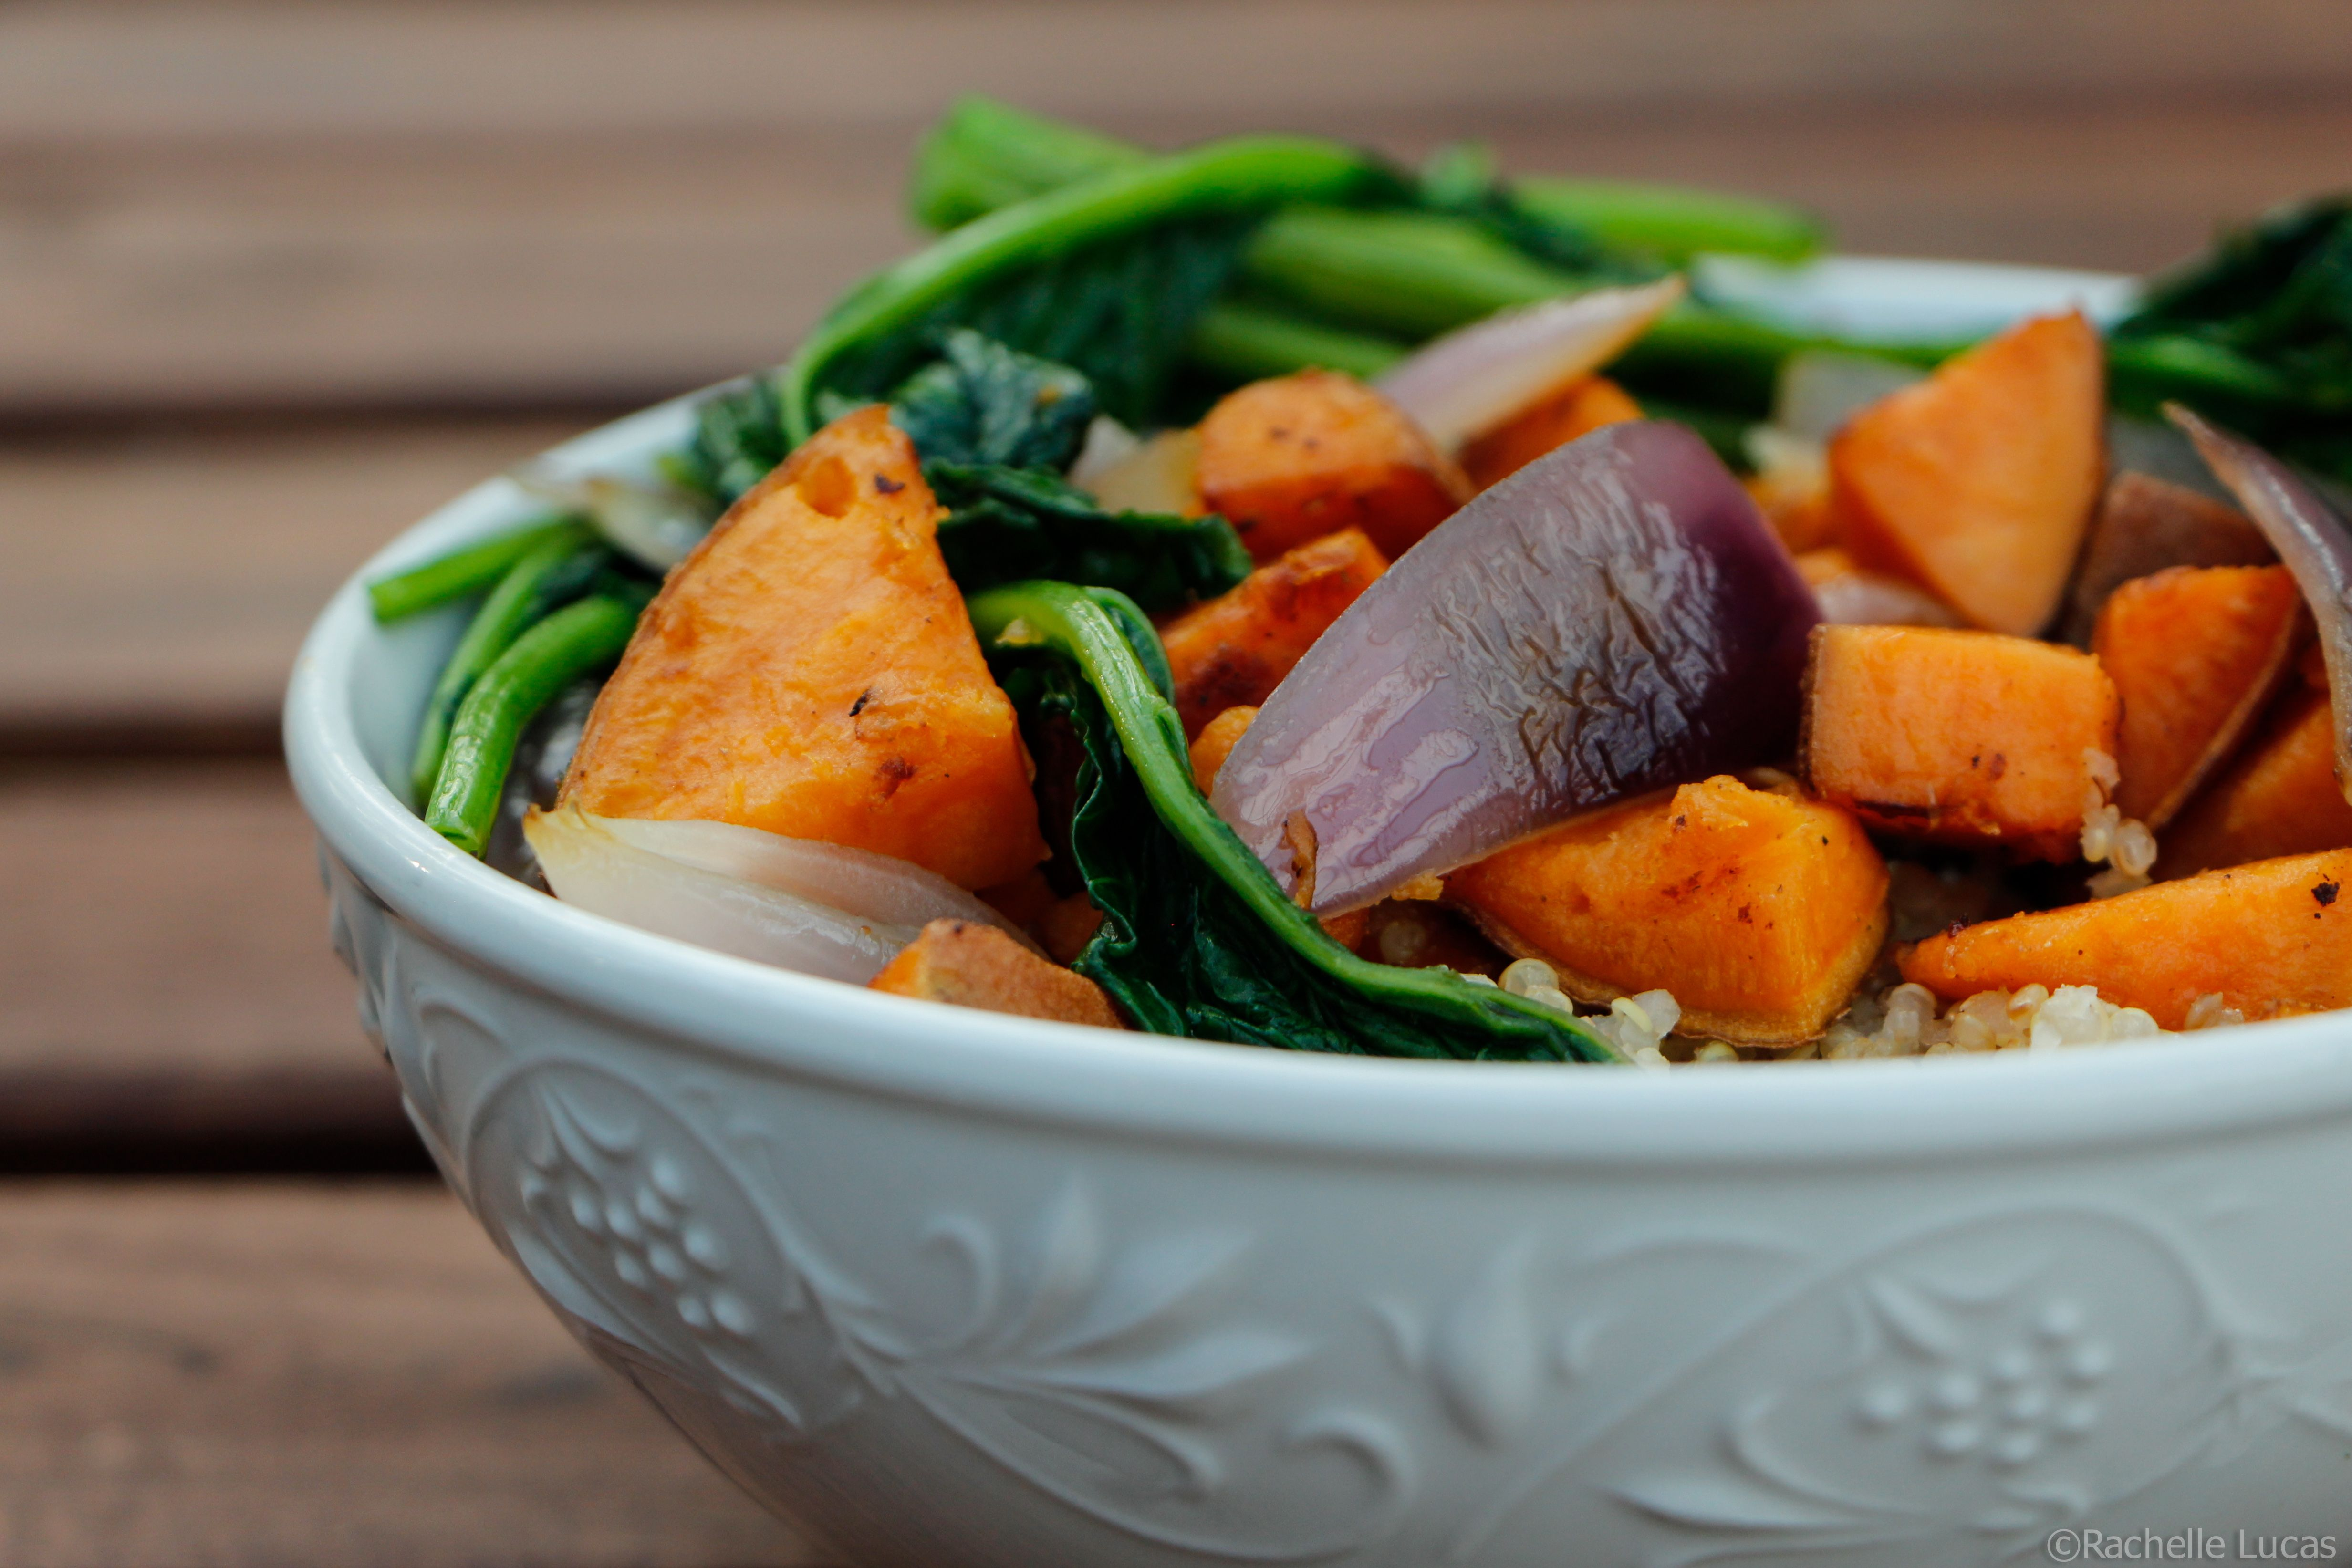 5 Ingredient Dinner ... Roasted Sweet Potato with toasted quinoa and sauteed rapini and onions.  Gluten Free and Vegetarian too!  Here's the #recipe:  http://thetravelbite.com/recipes/5-ingredient-dinner-roasted-sweet-potato-with-quinoa/